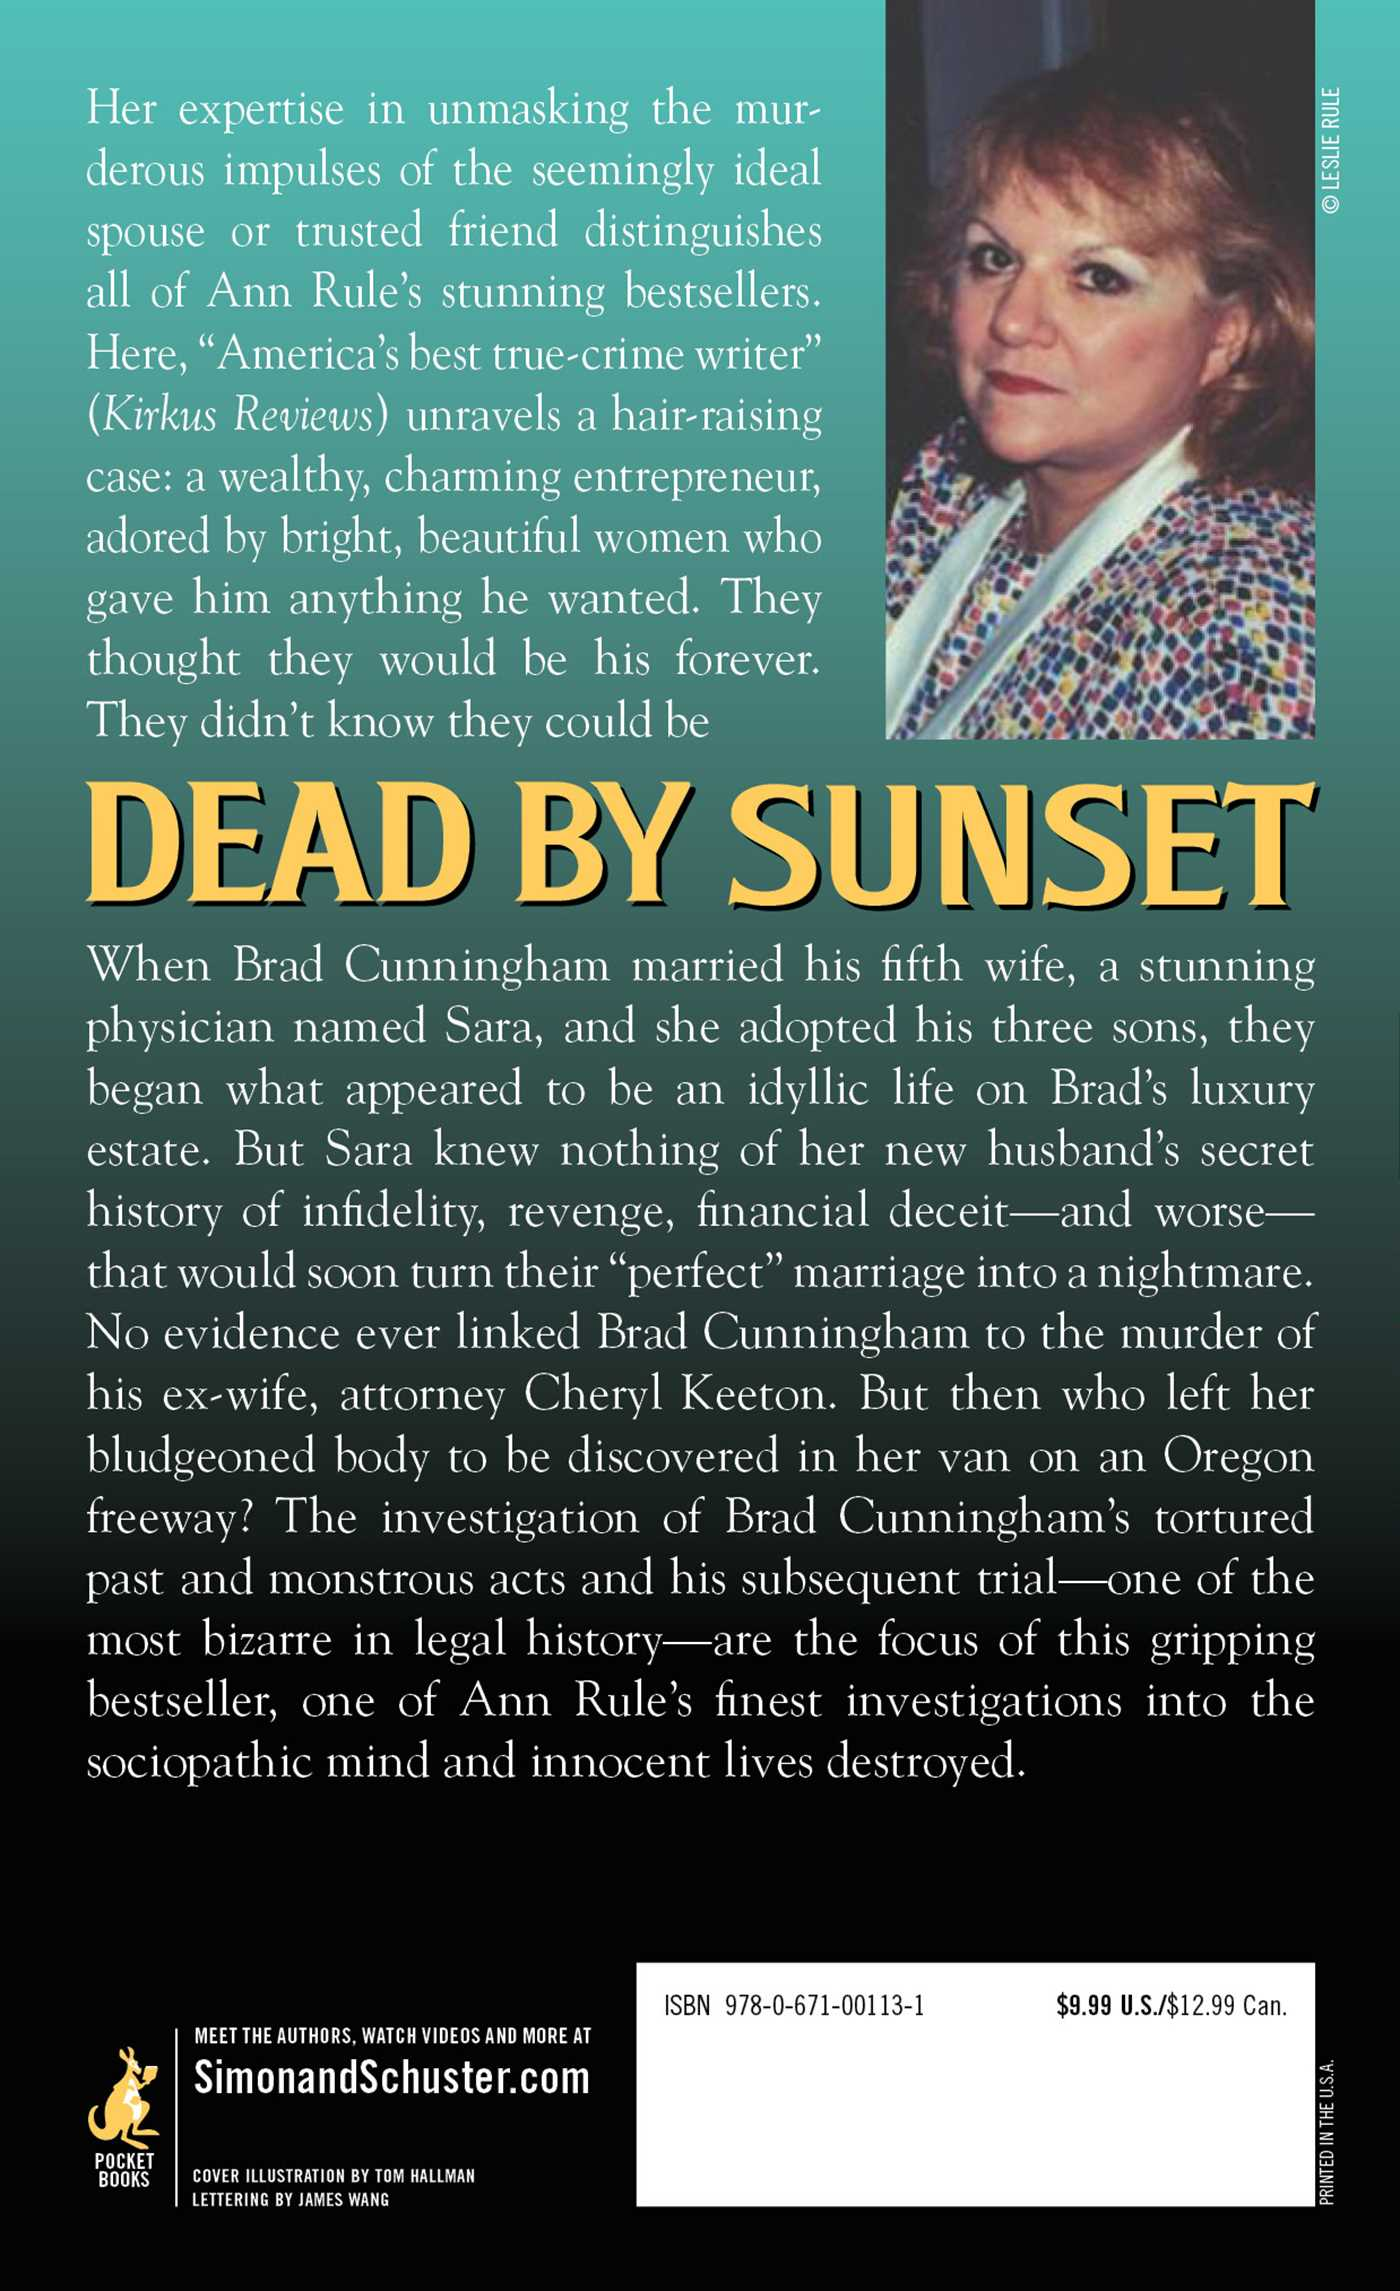 Dead by sunset 9780671001131 hr back